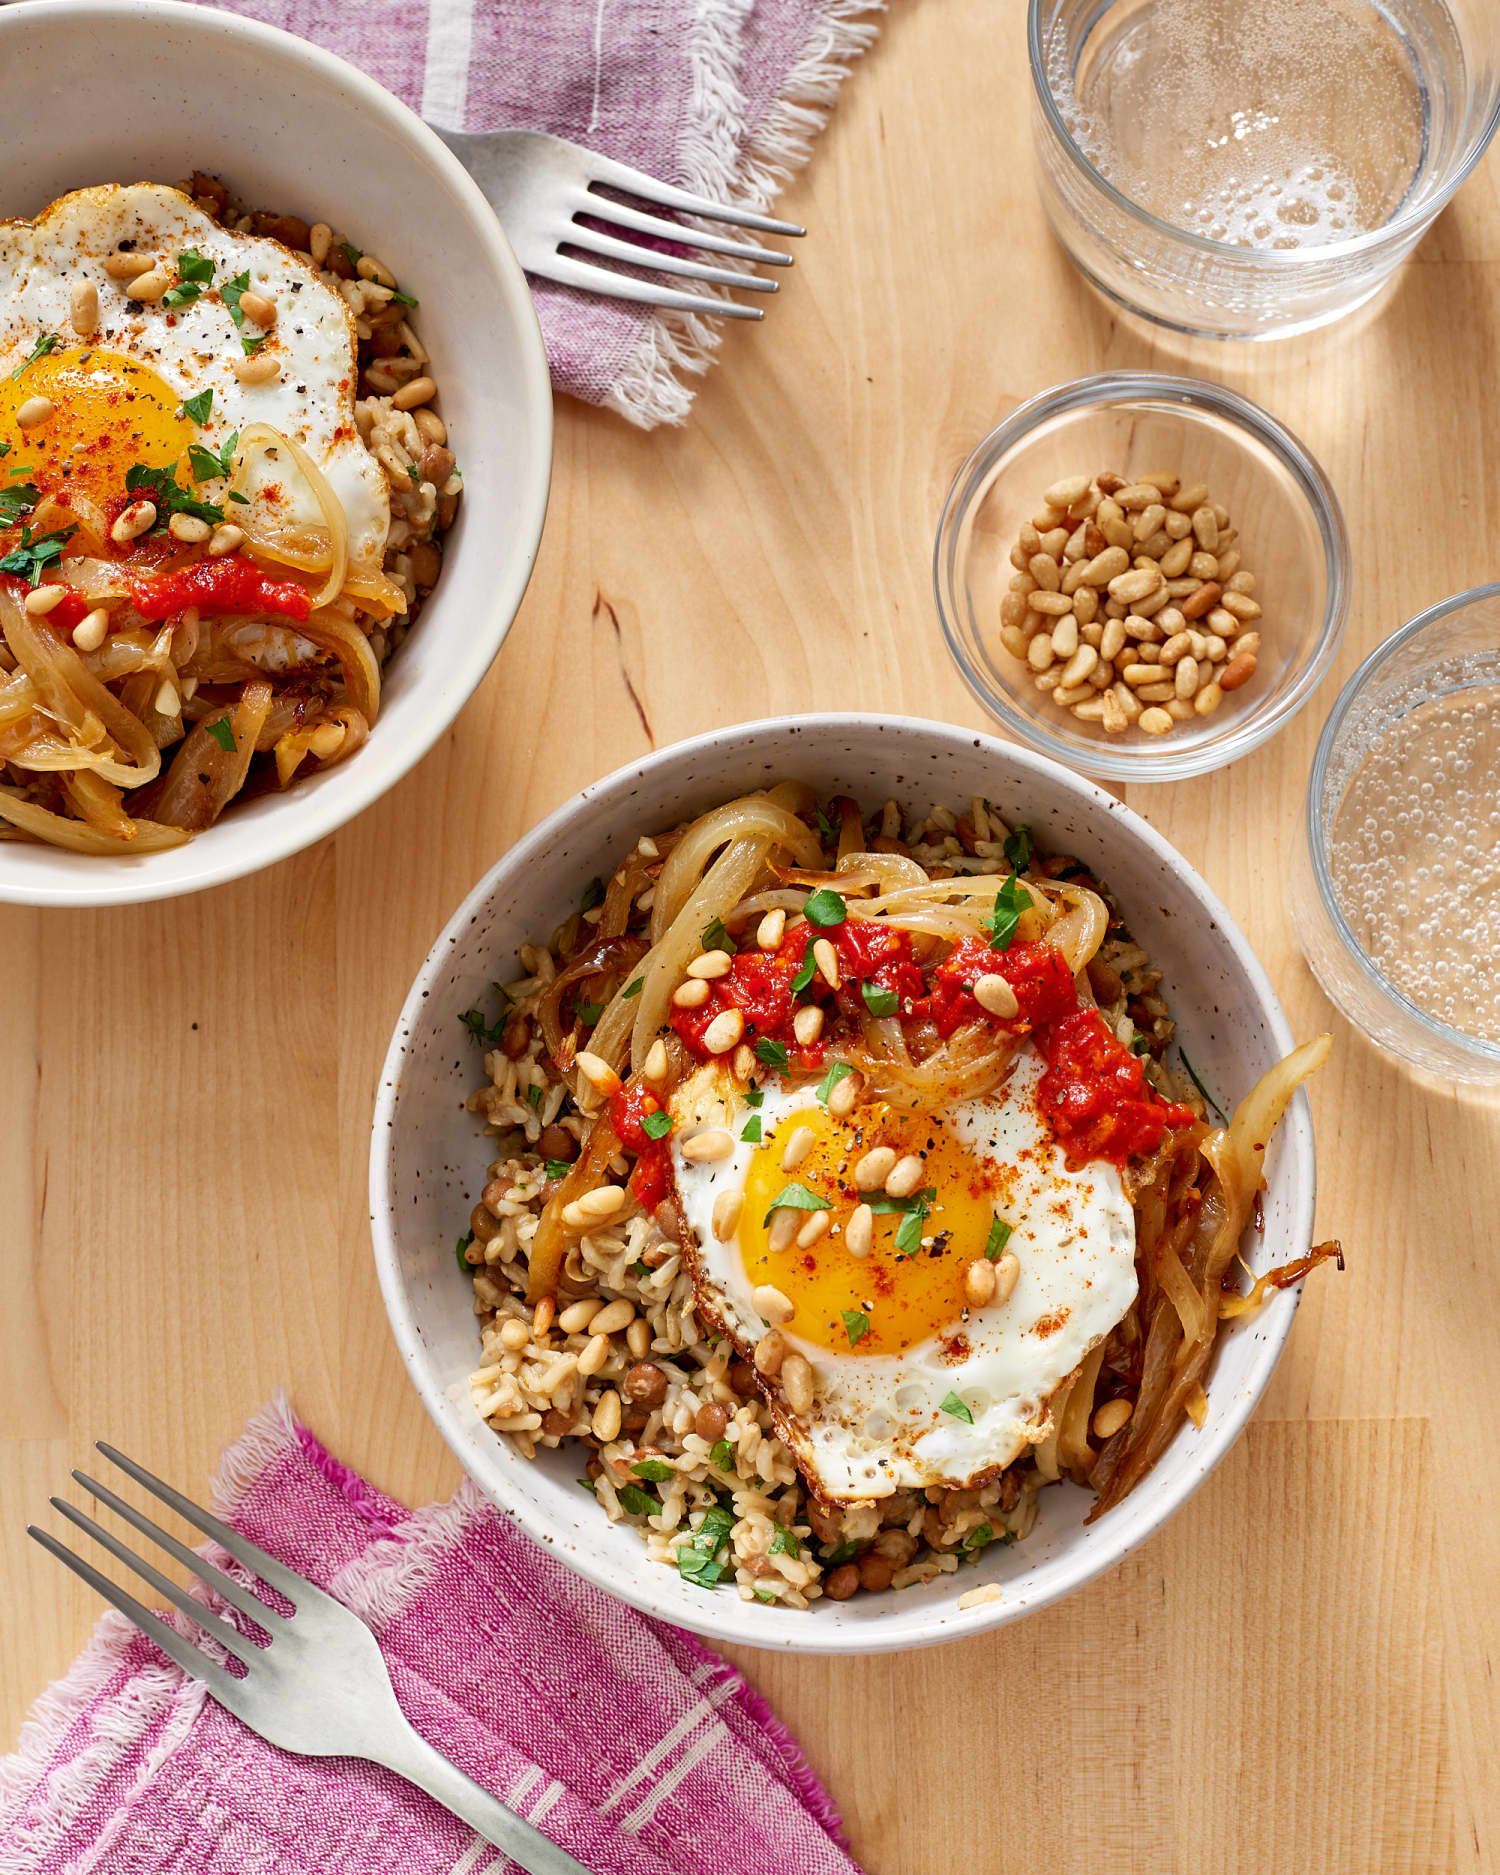 Recipe: Brown Rice Bowl with Lentils, Caramelized Onions & Fried Egg